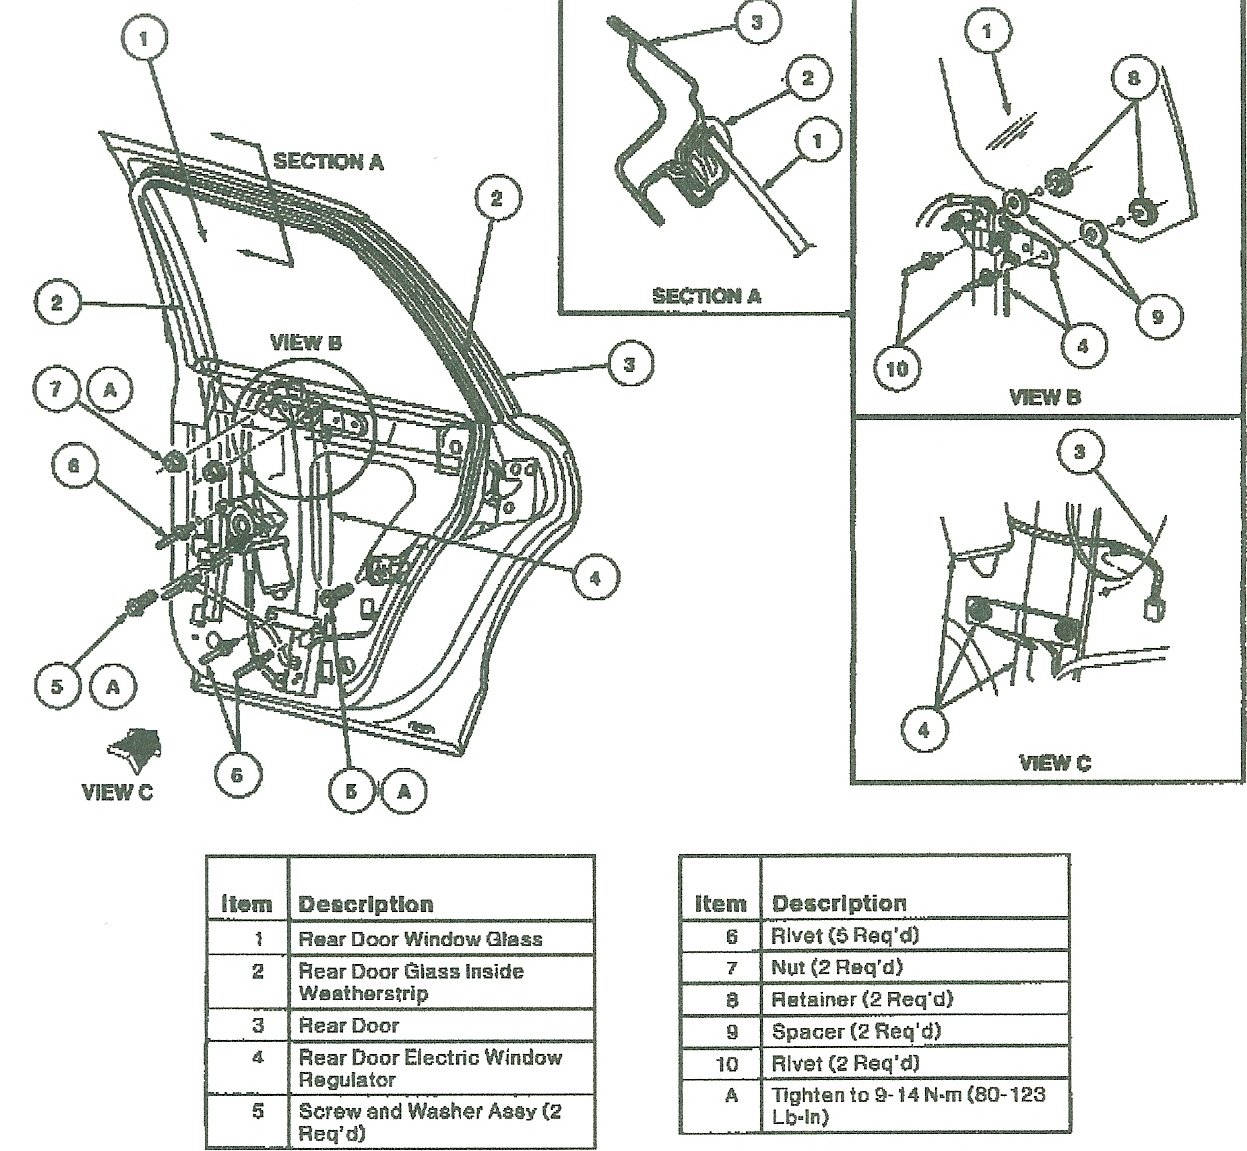 Rear Door Regulator Removal on 2000 Lincoln Ls Window Parts Diagram